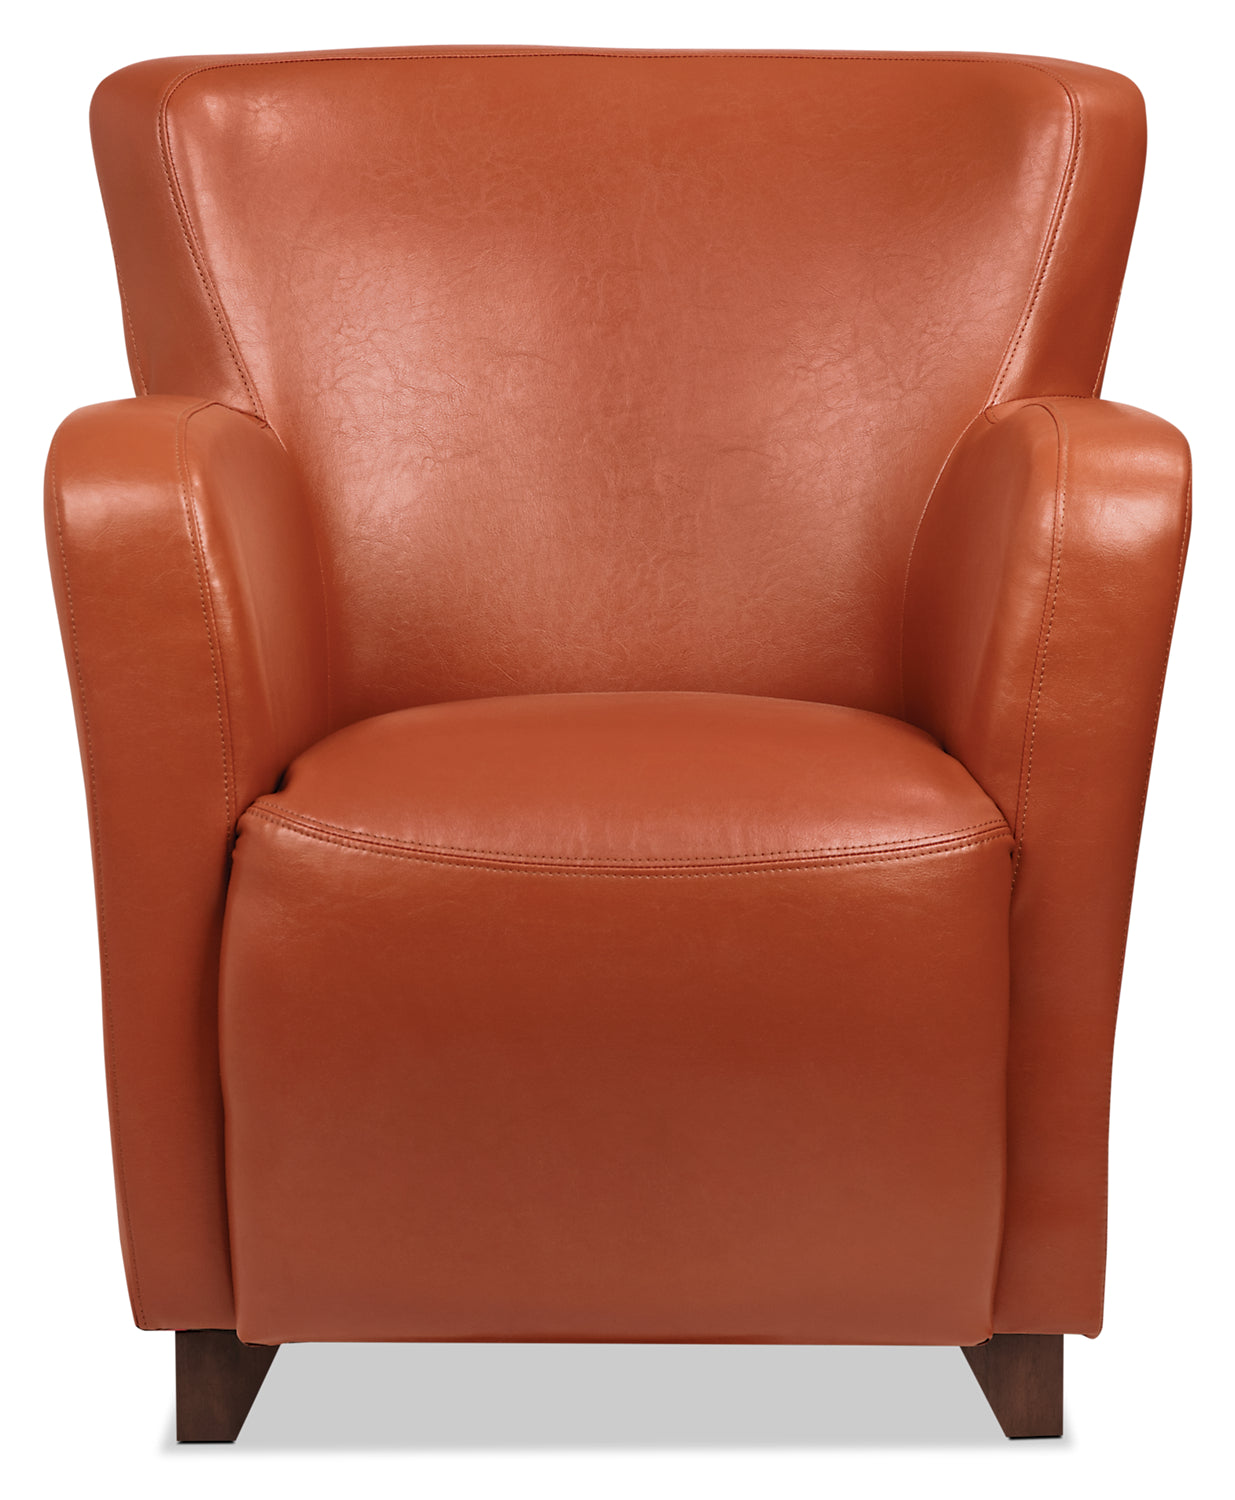 Awesome Zello Bonded Leather Accent Chair Spice Pdpeps Interior Chair Design Pdpepsorg